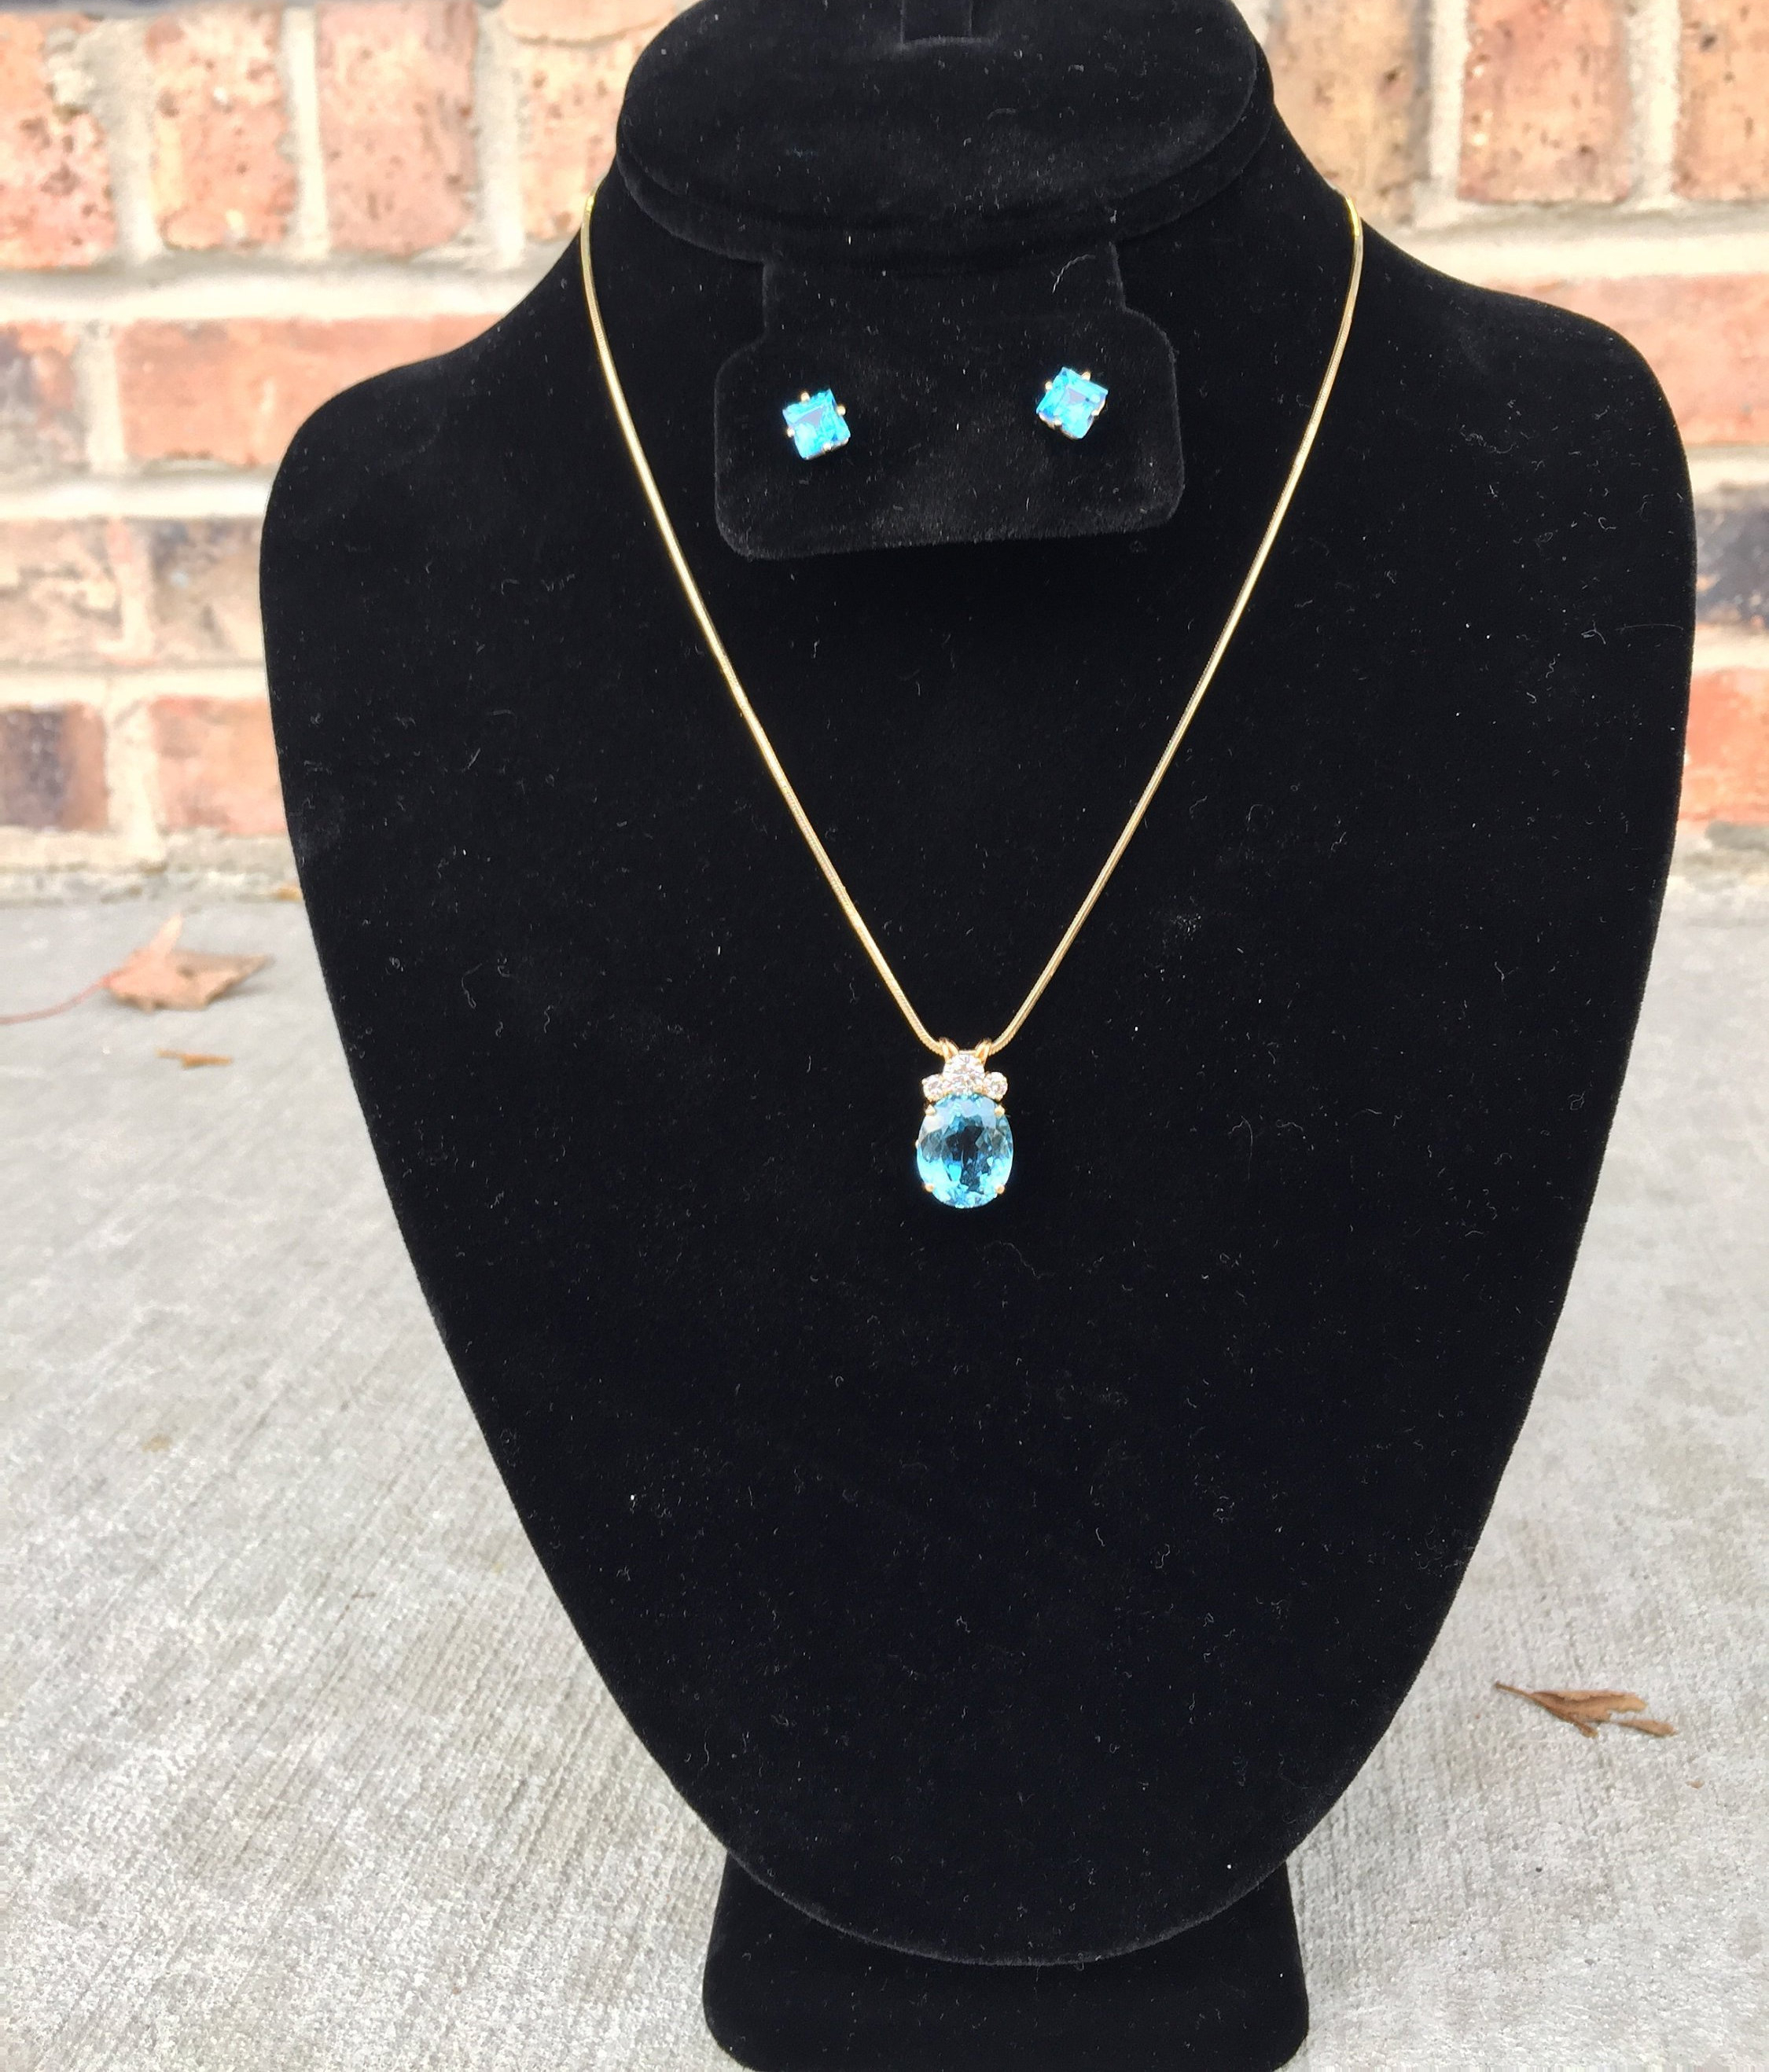 Aquamarine And 14K Gold With Diamonds Necklace Pendant And Earrings Set Pertaining To Most Up To Date Reversible Diamond, Sapphire And Aquamarine Pendant Necklaces (View 2 of 25)